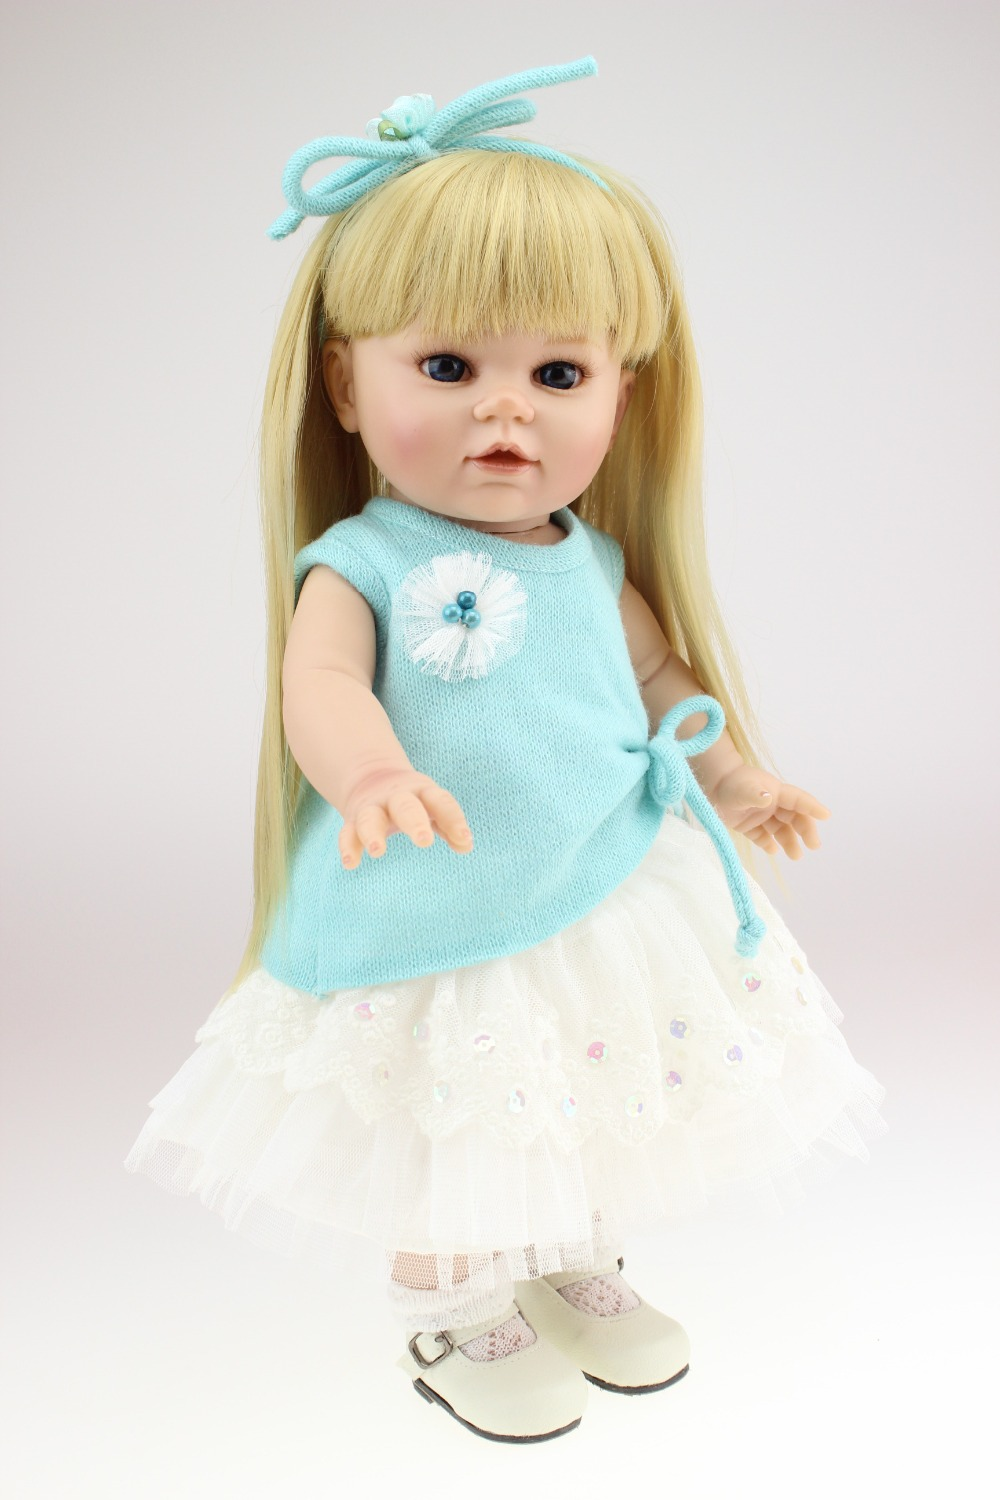 Baby Doll Girl Images Wallsjpg Com